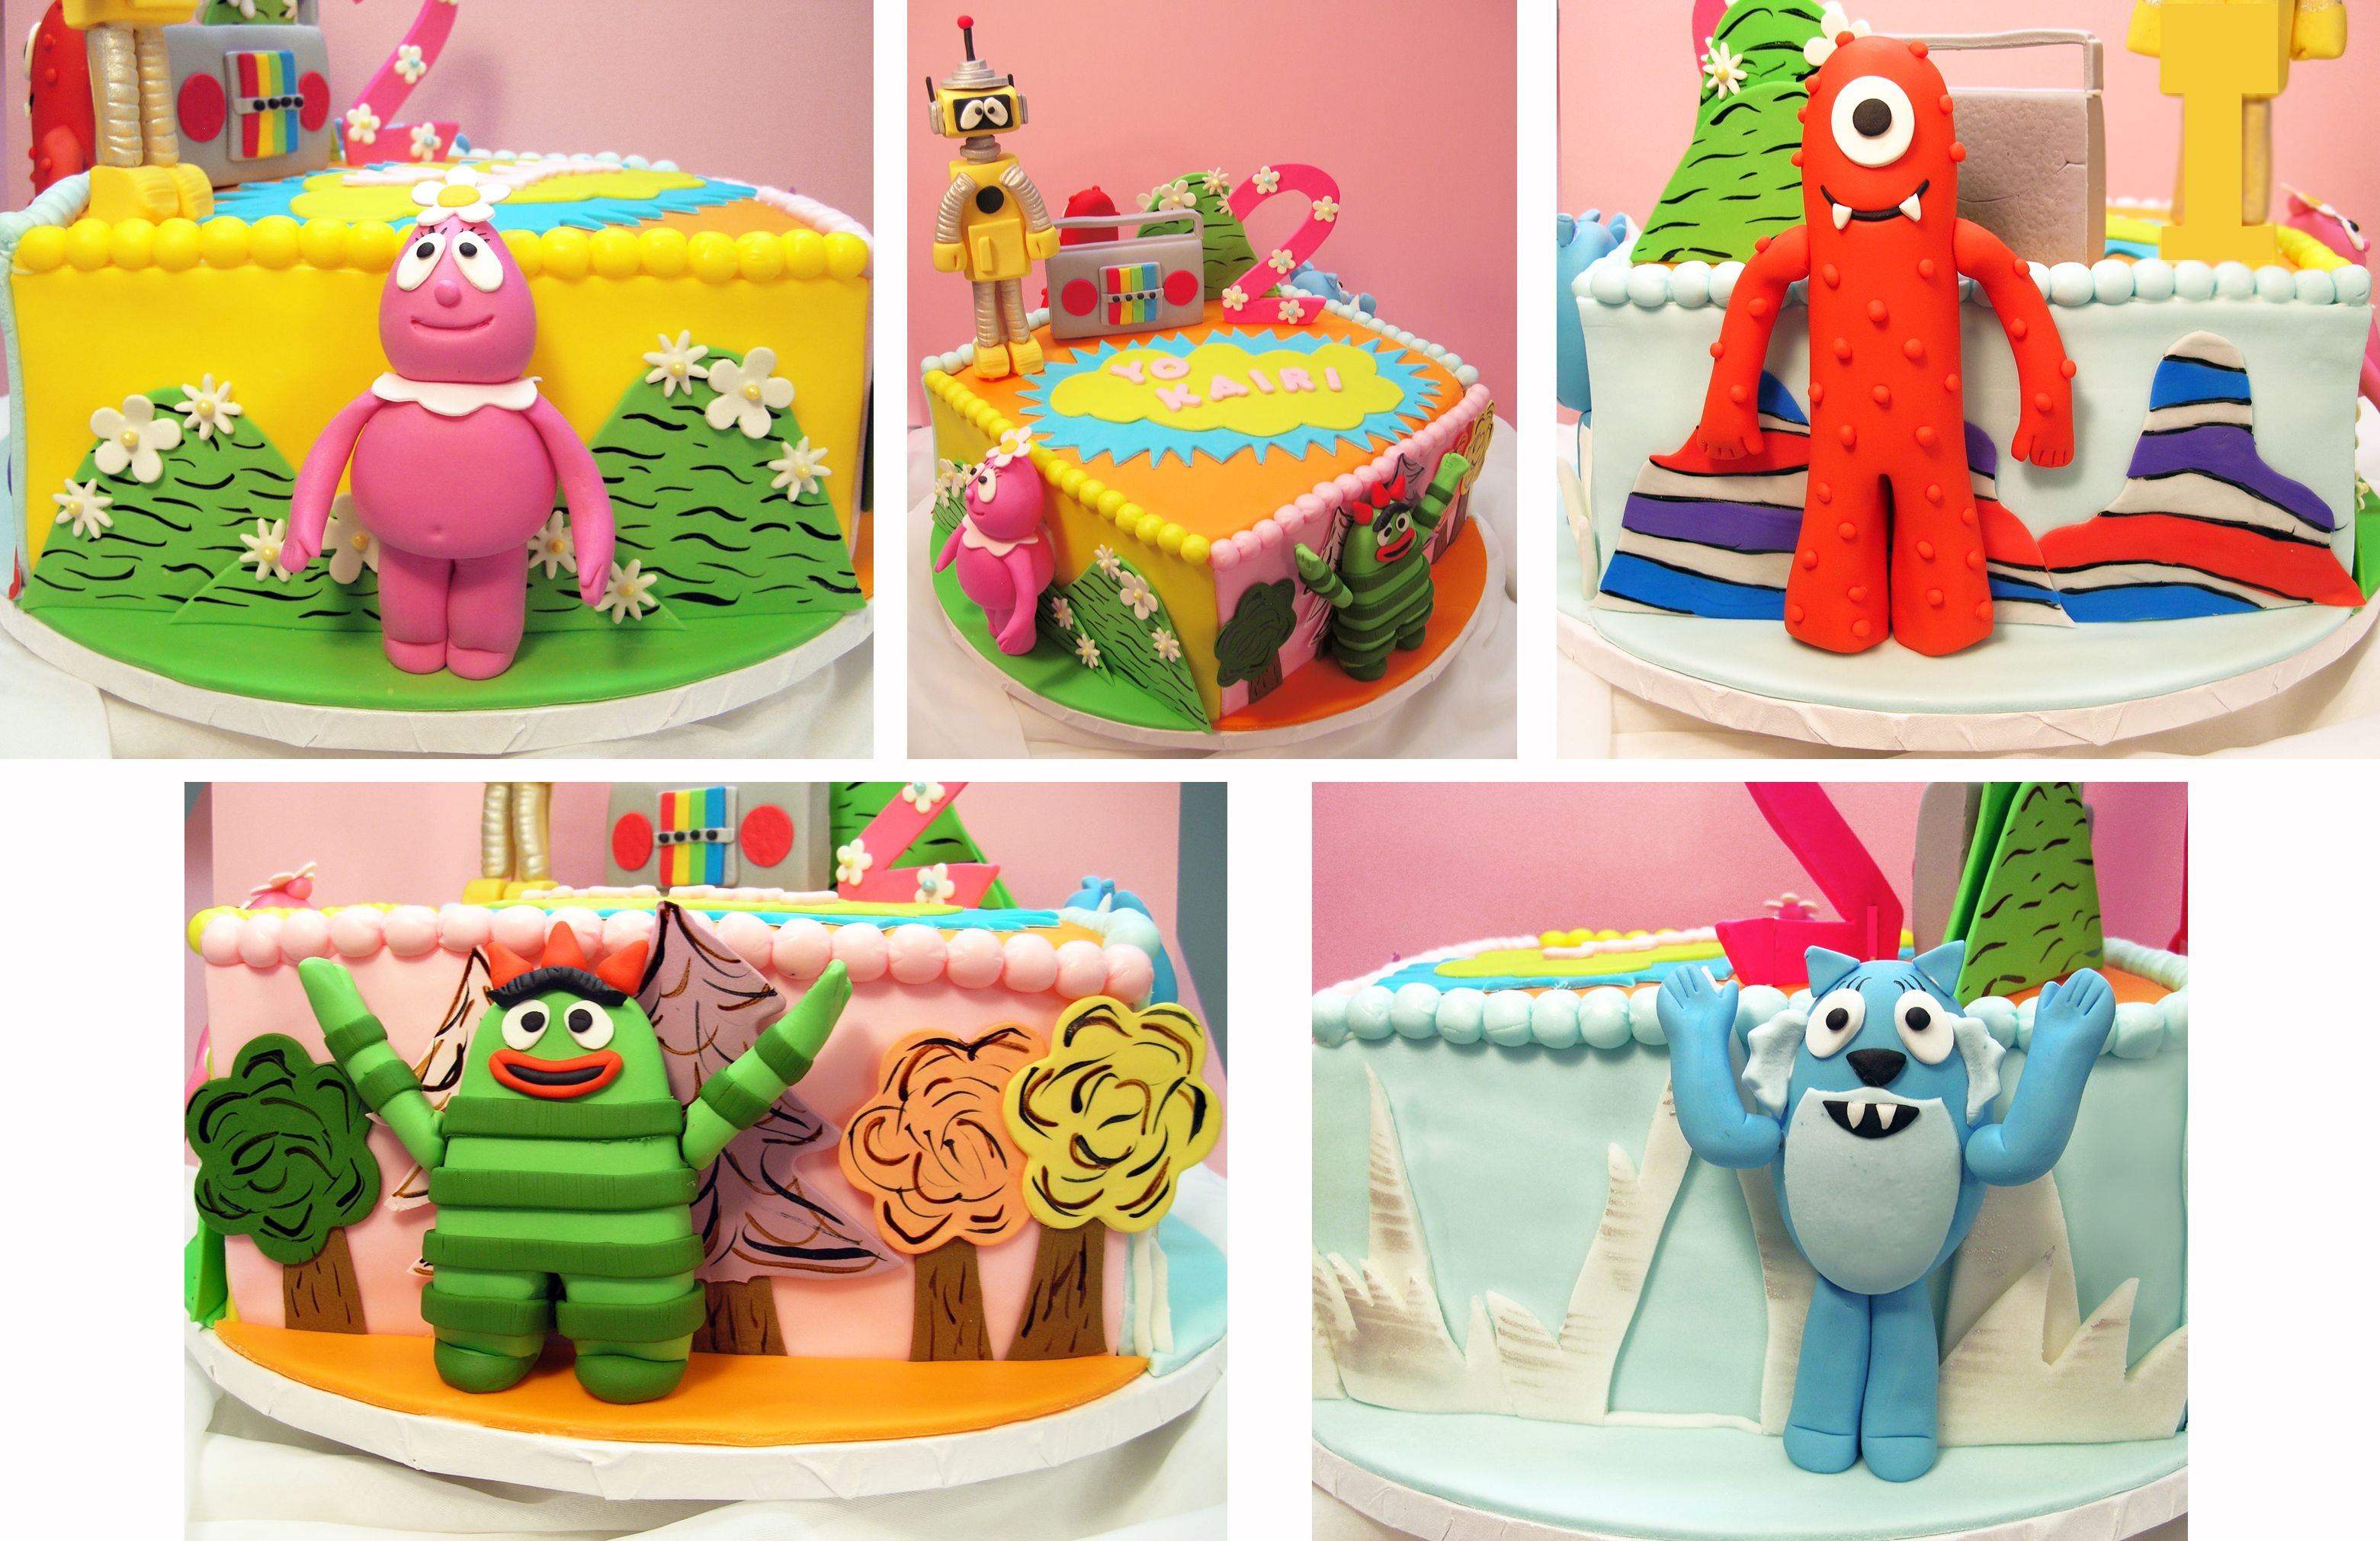 Miraculous Yo Gabba Gabba Birthday Cake With Each Side A Different Land Funny Birthday Cards Online Overcheapnameinfo